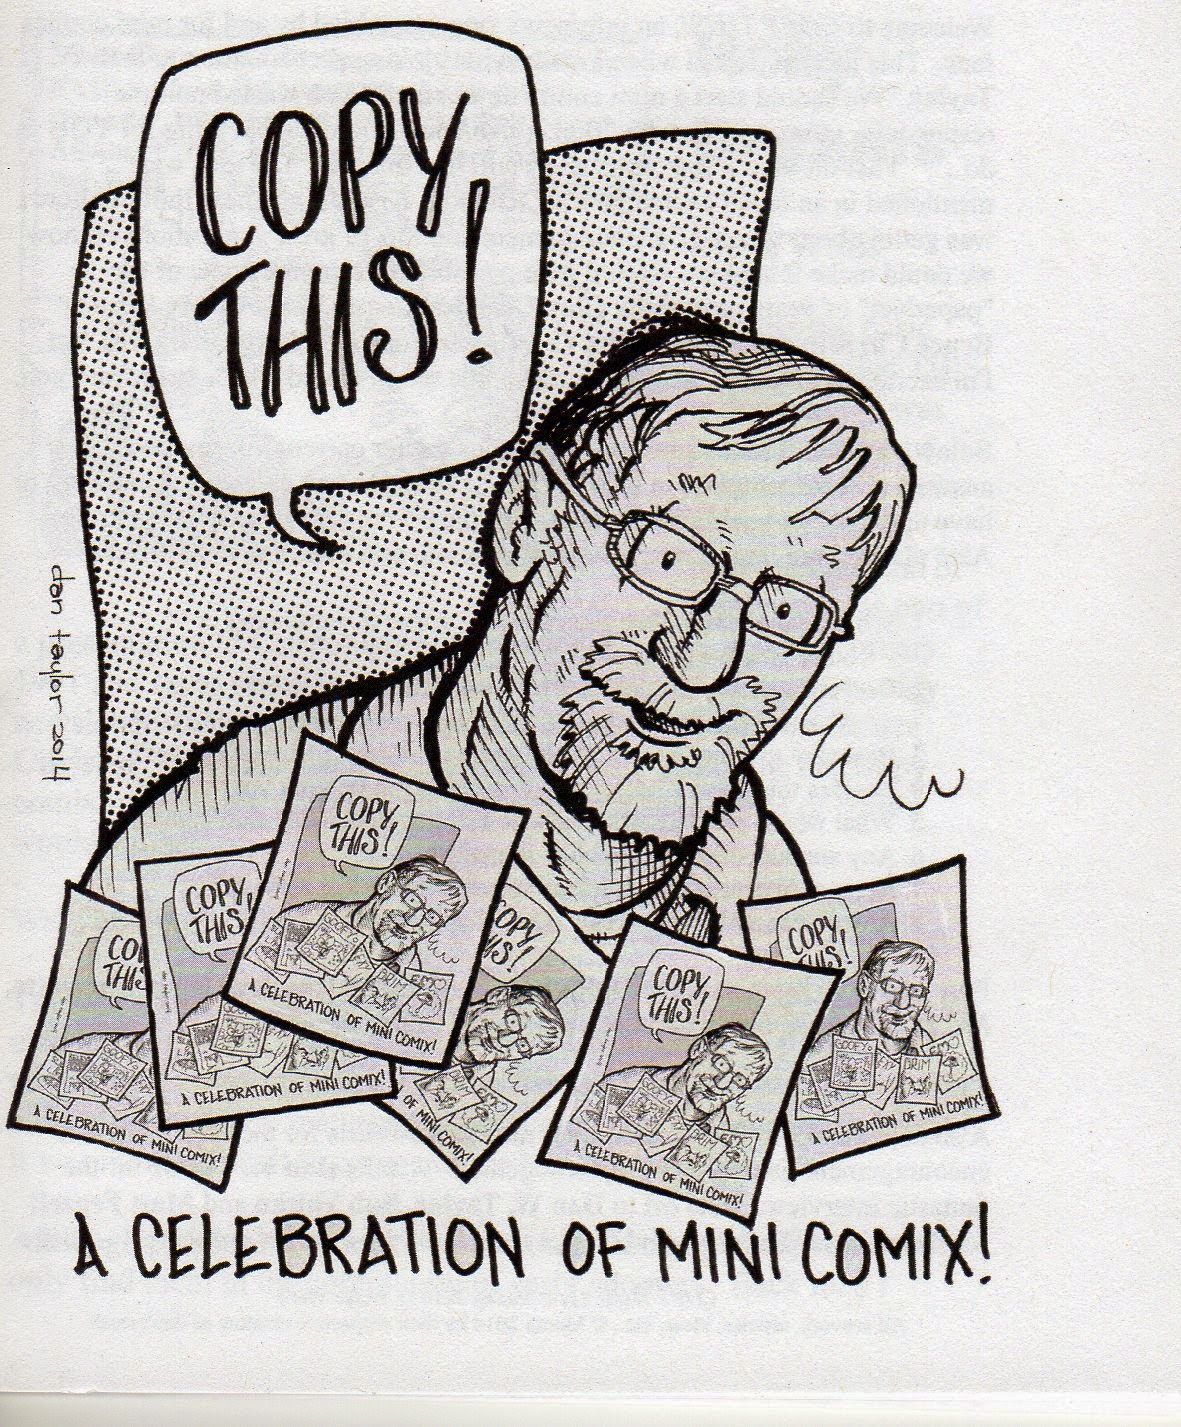 Copy This! is a mini comics news and review zine